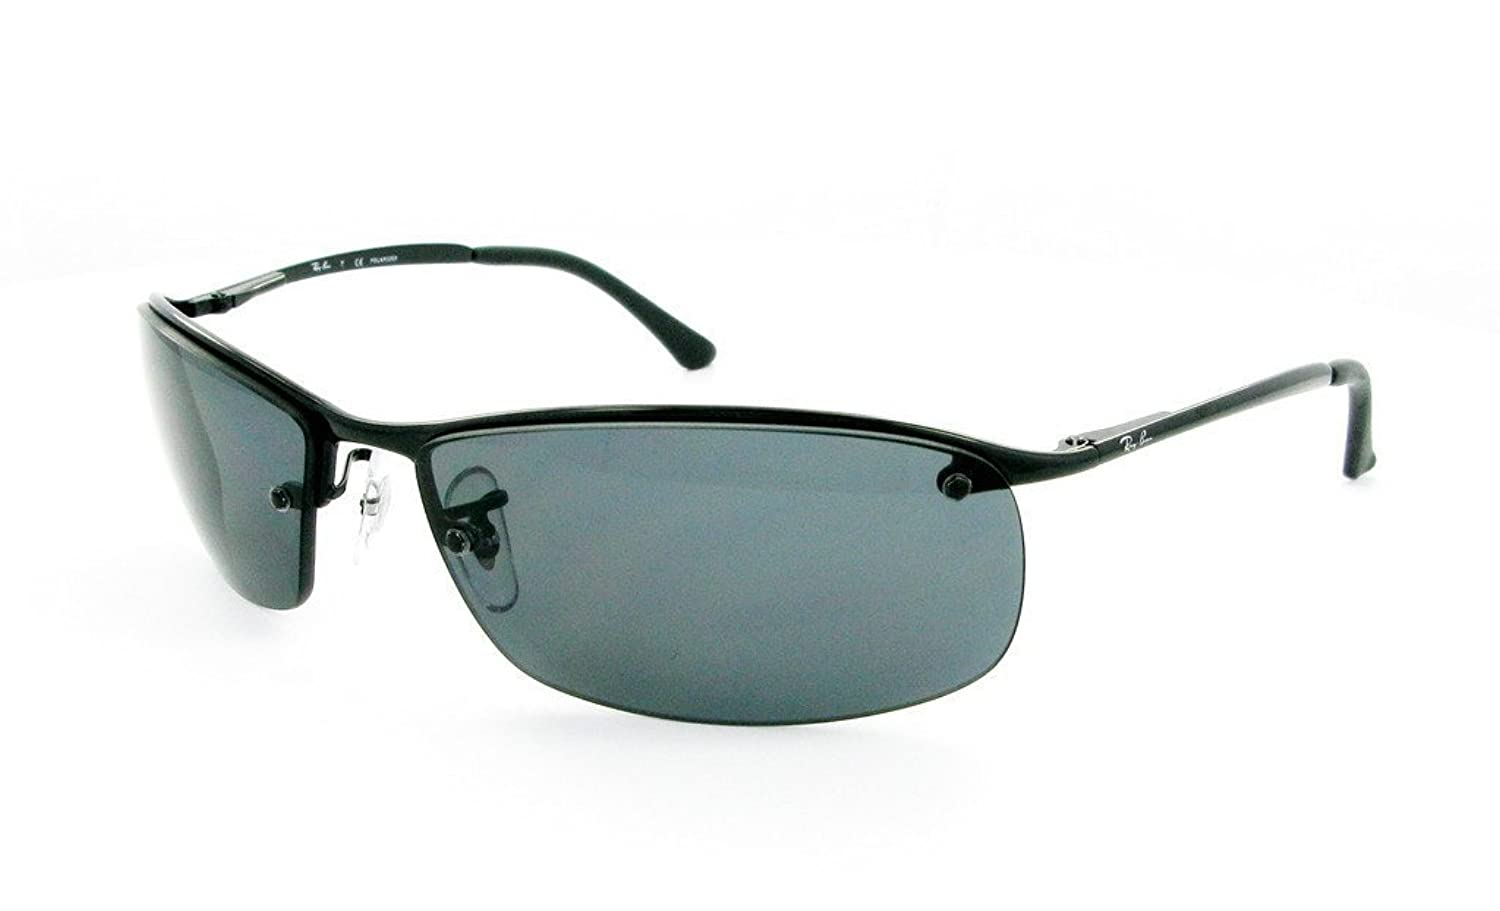 eb8c2d8f33 Ray Ban Bifocal Sunglasses